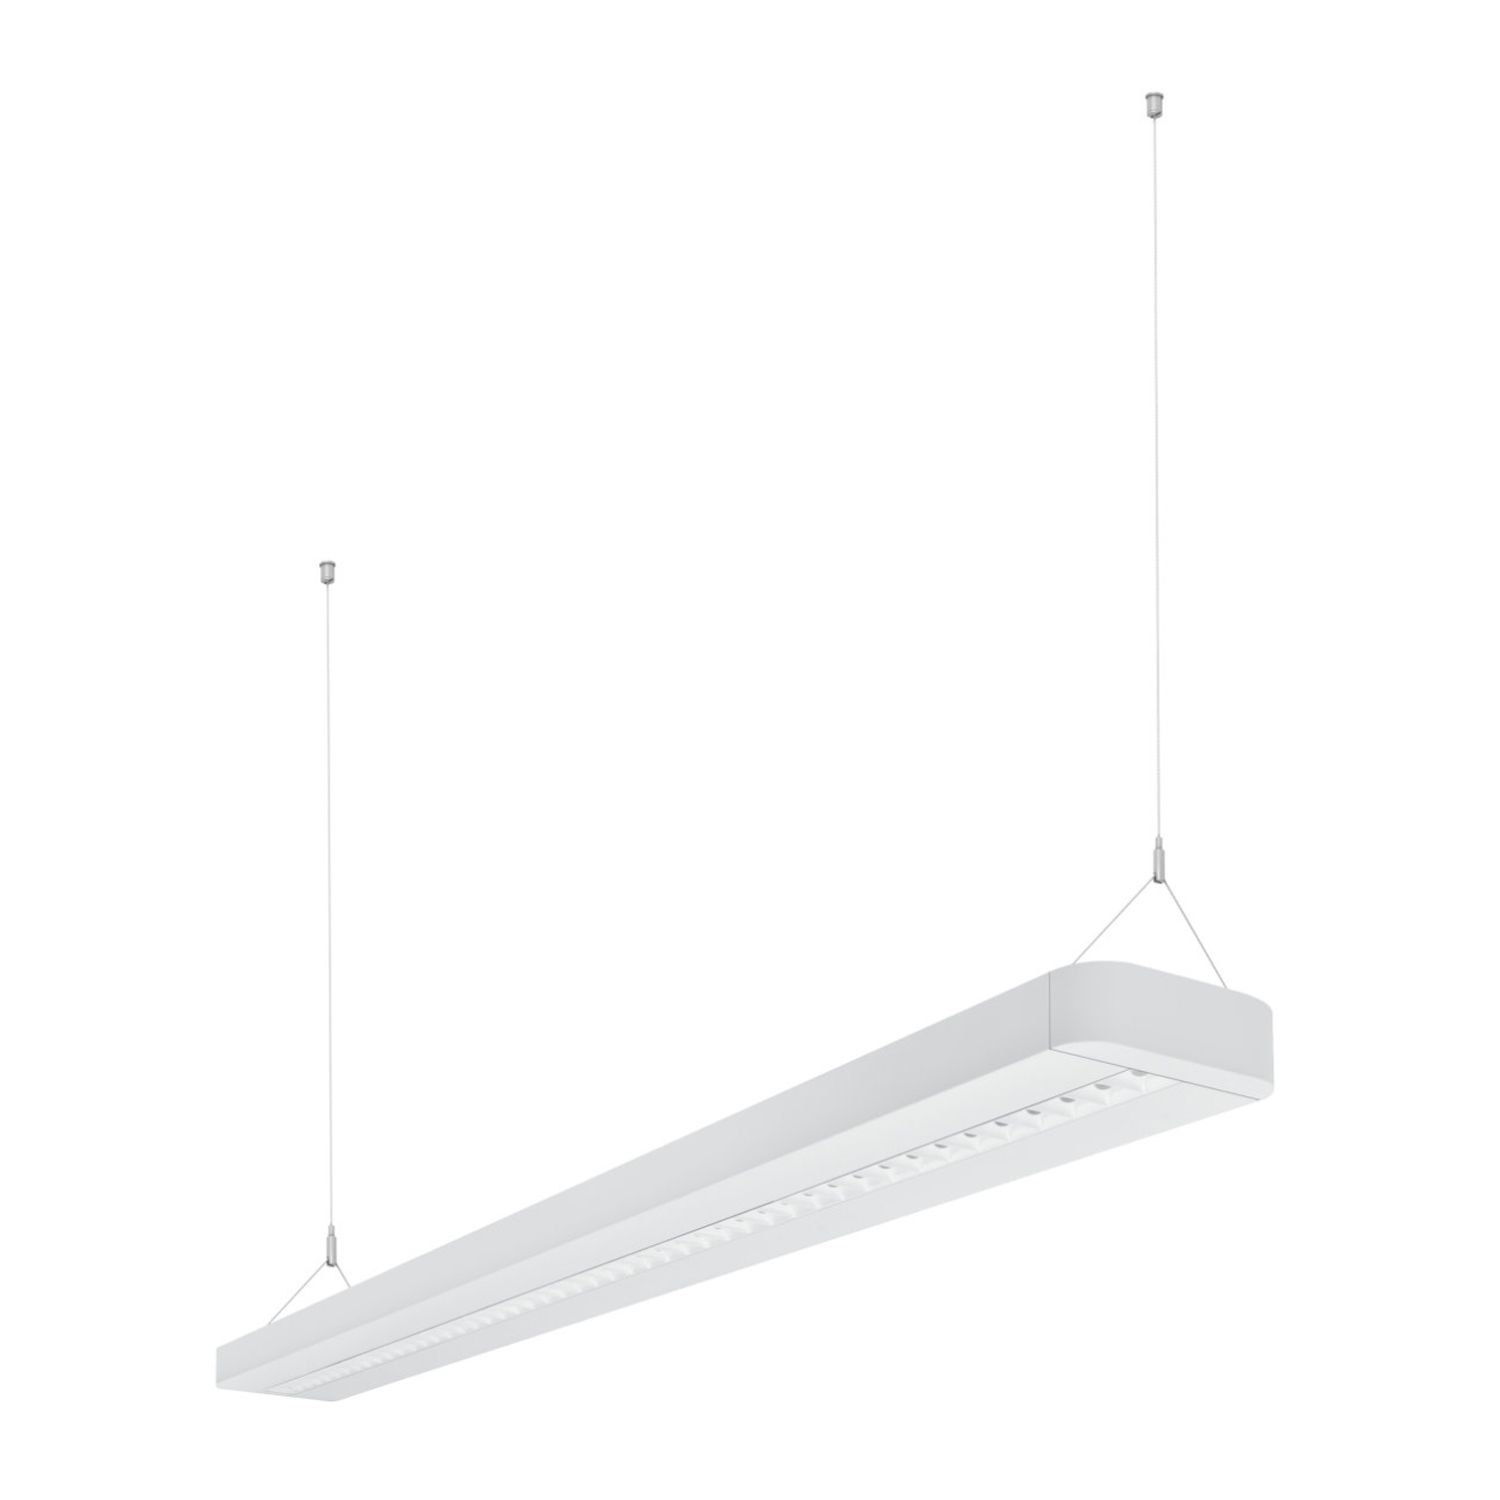 Ledvance Linear IndiviLED Direct/Indirect 56W 3000K 150cm |